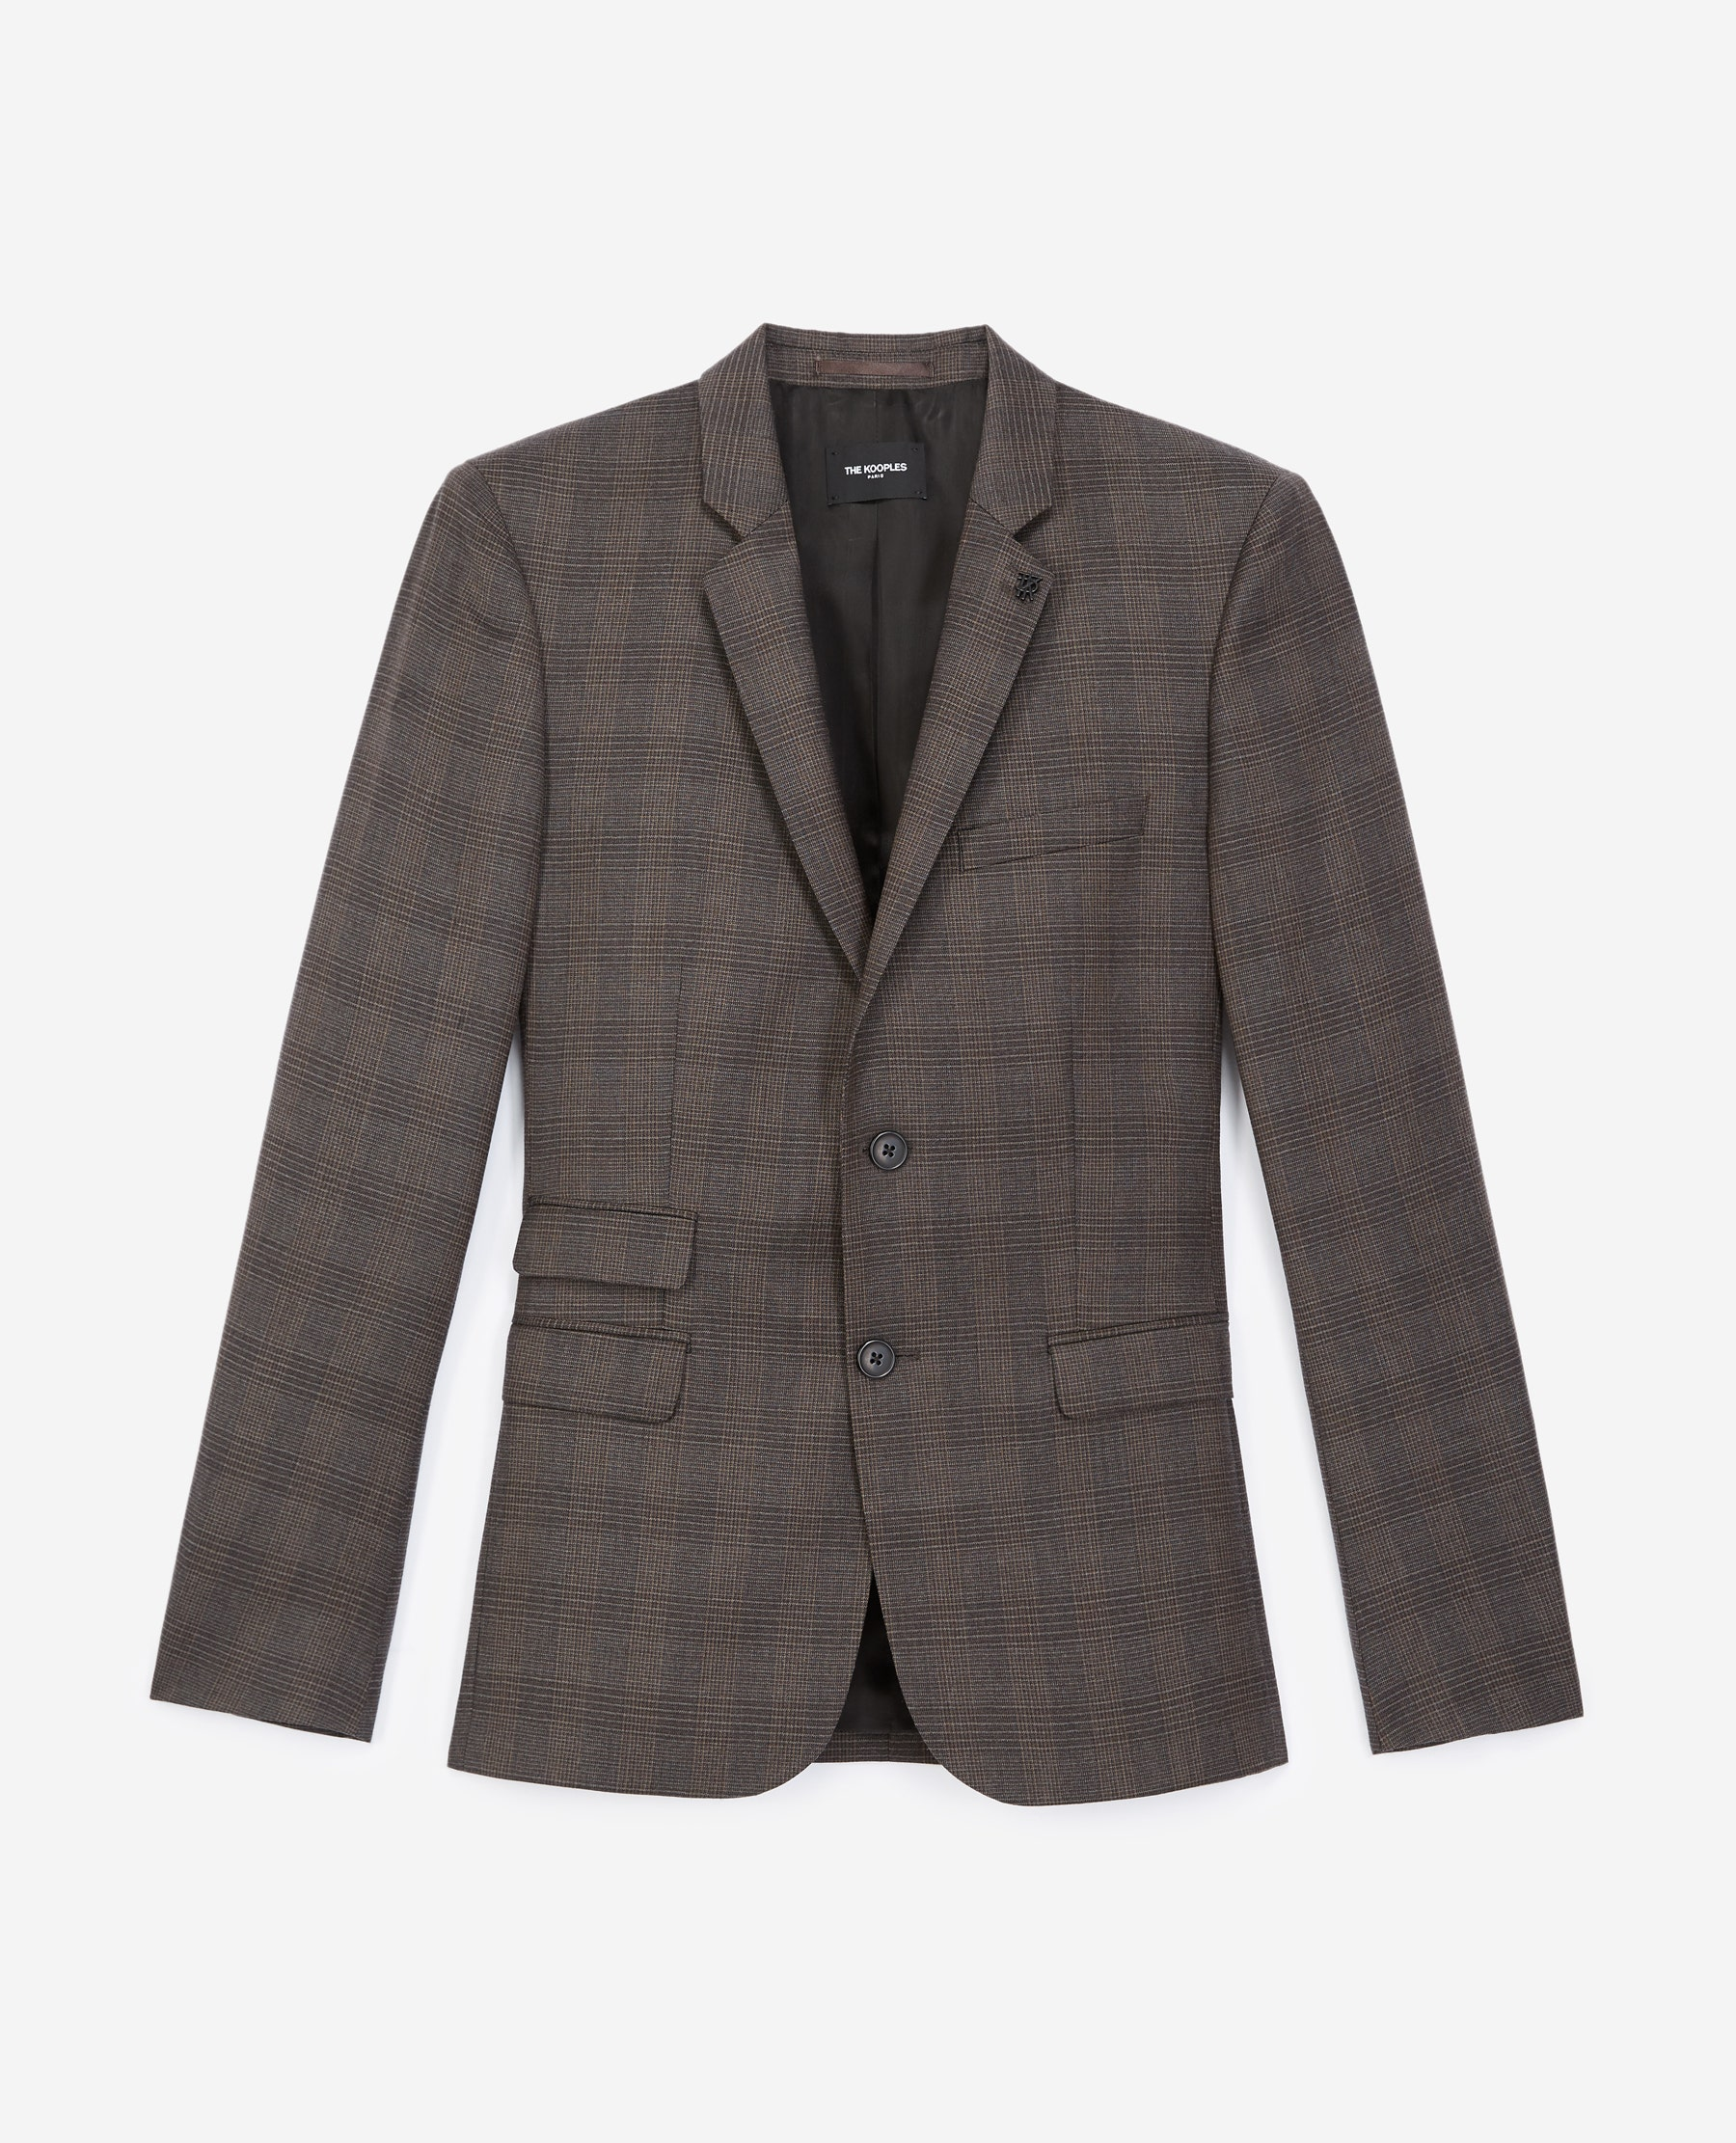 Veste laine grise à carreaux - The Kooples - Modalova